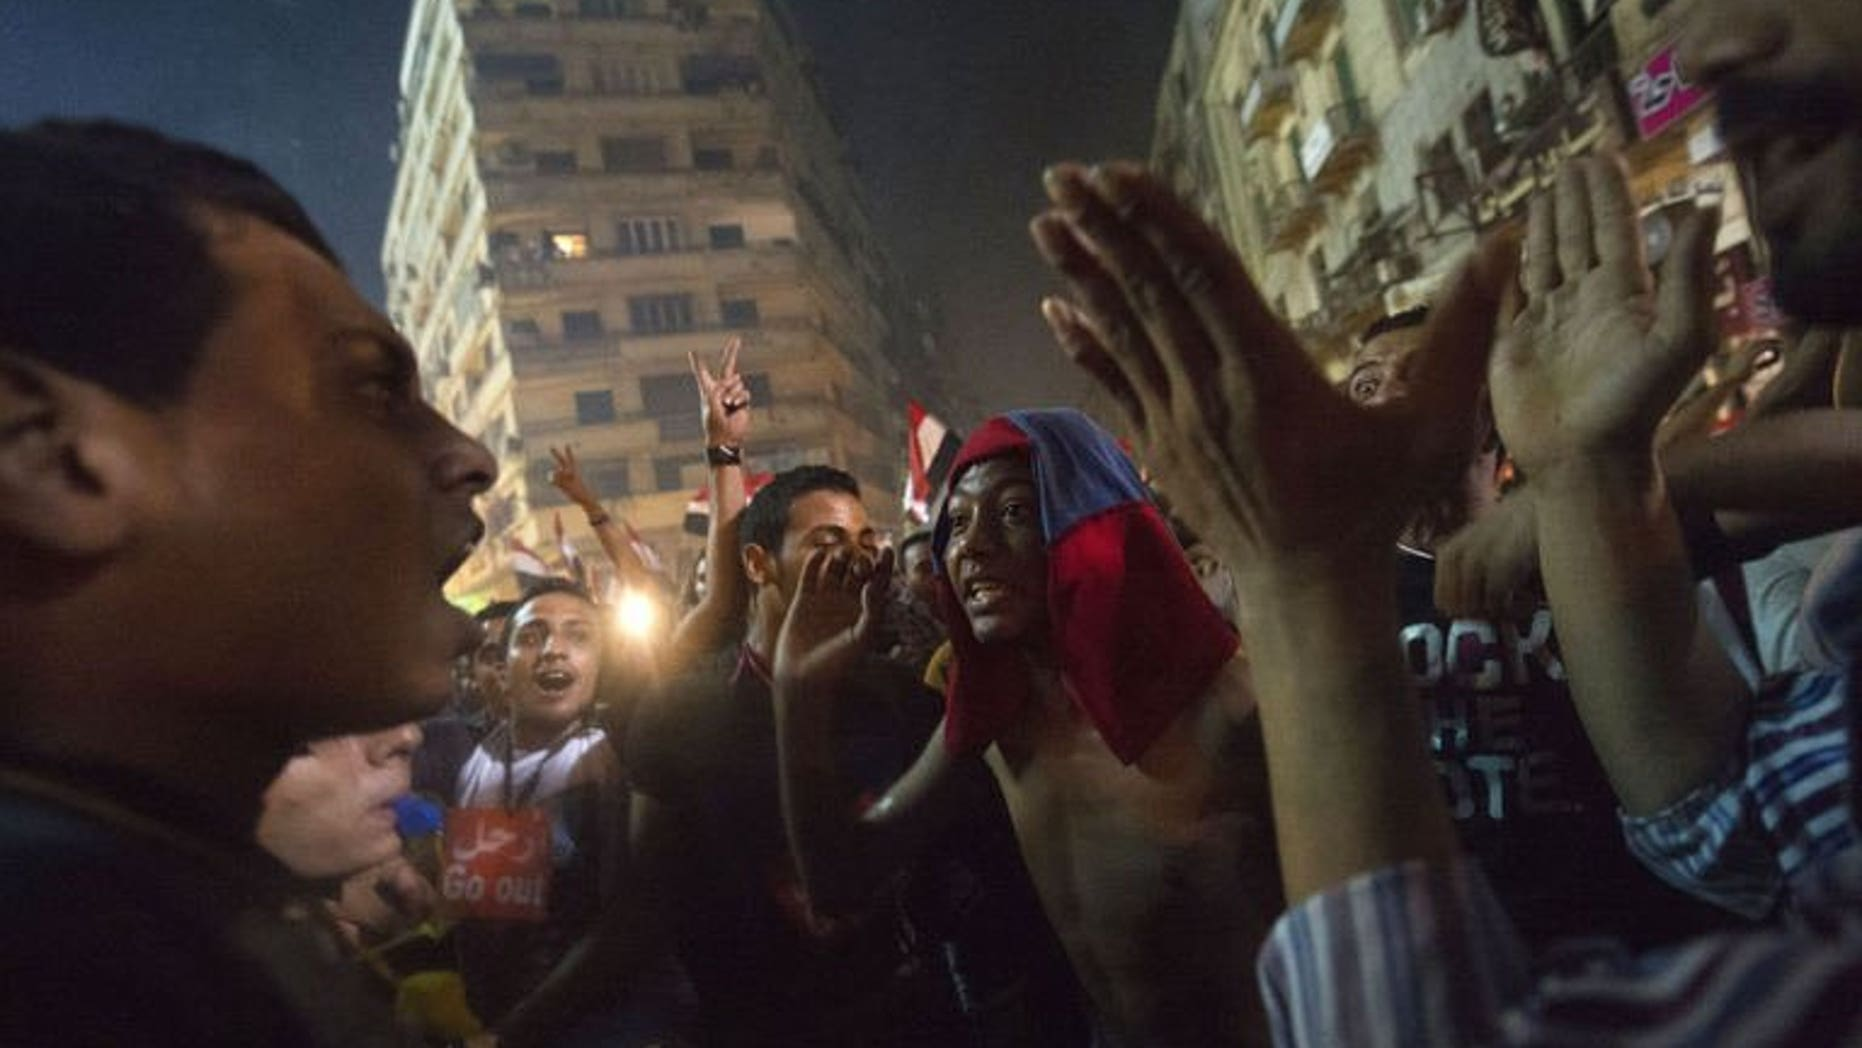 People celebrate at Tahrir Square after the announcement that President Mohamed Morsi was being toppled, on July 3, 2013 in Cairo. Egypt's new caretaker president Adly Mansour had been head of the Supreme Constitutional Court for just two days when the army named him leader of the Arab world's most populous state.